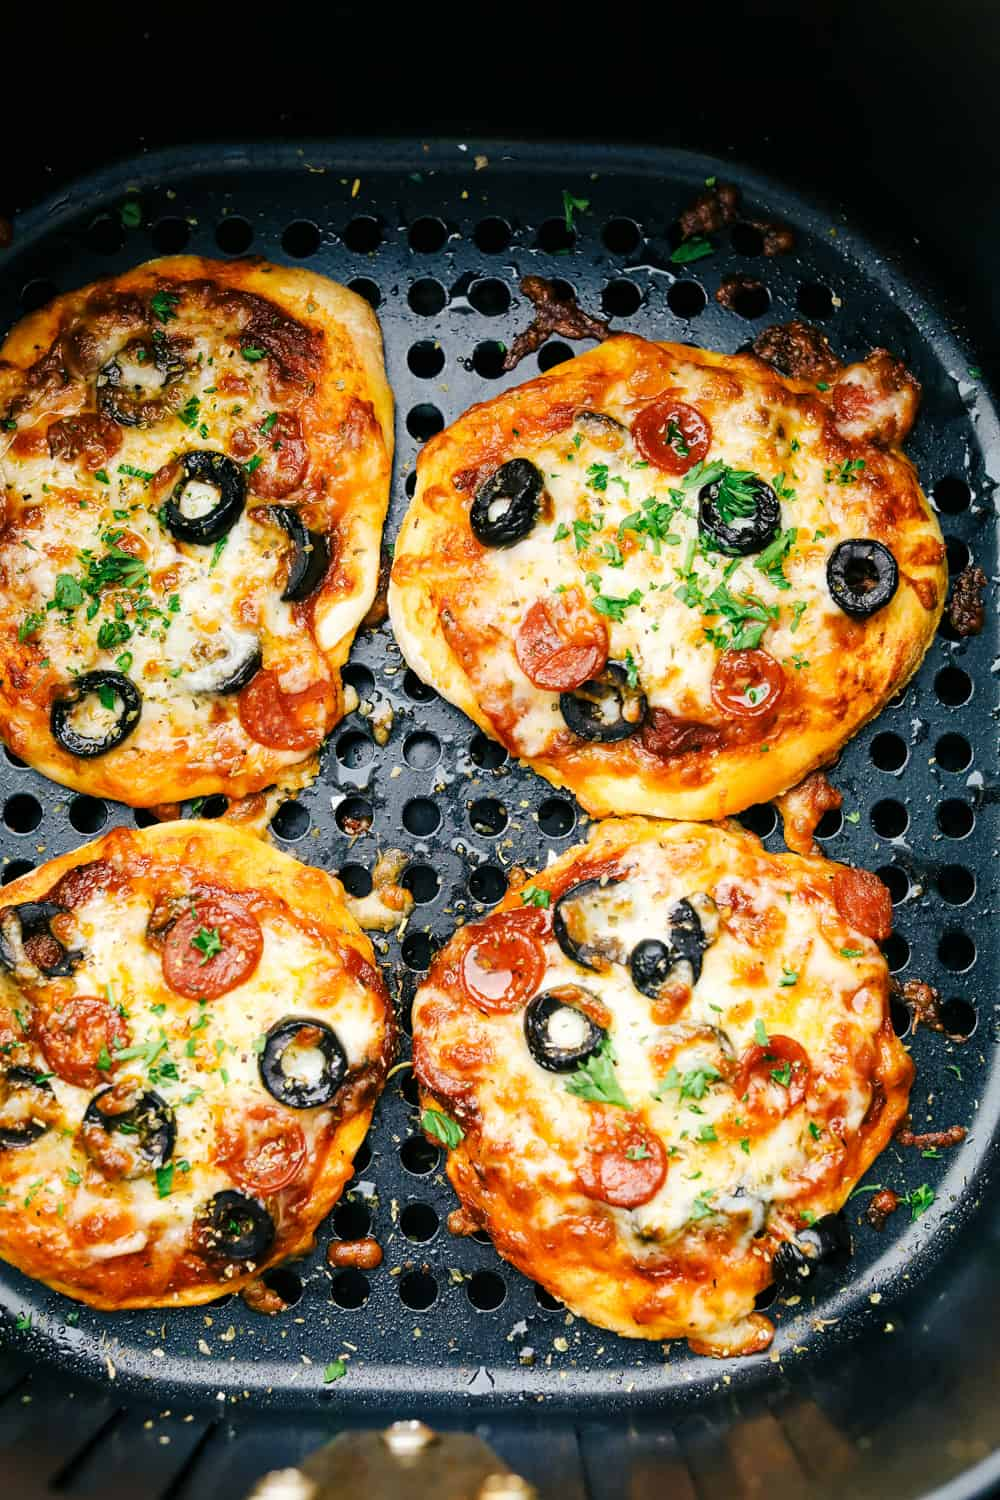 Perfectly baked air fryer biscuit pizzas.